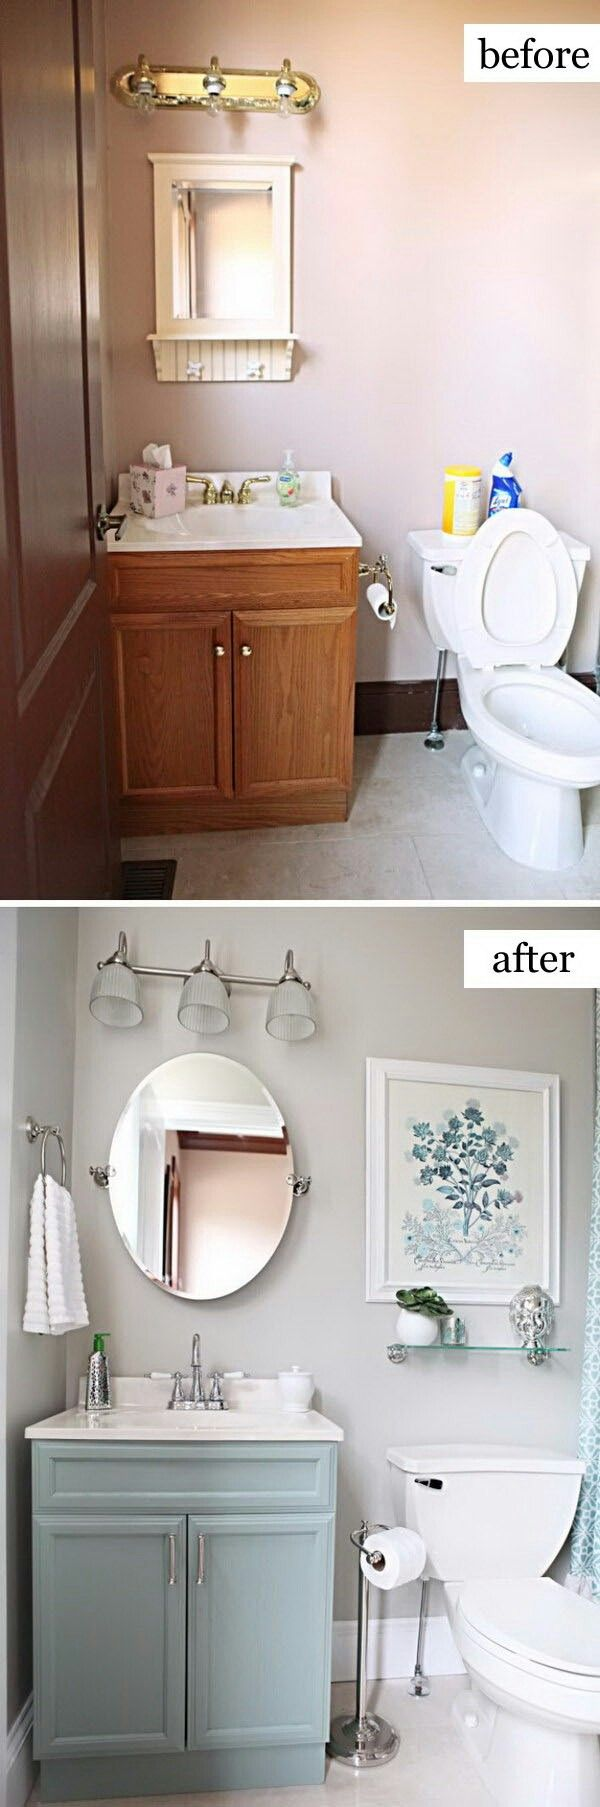 600 1807 do it - How to remodel your bathroom yourself ...